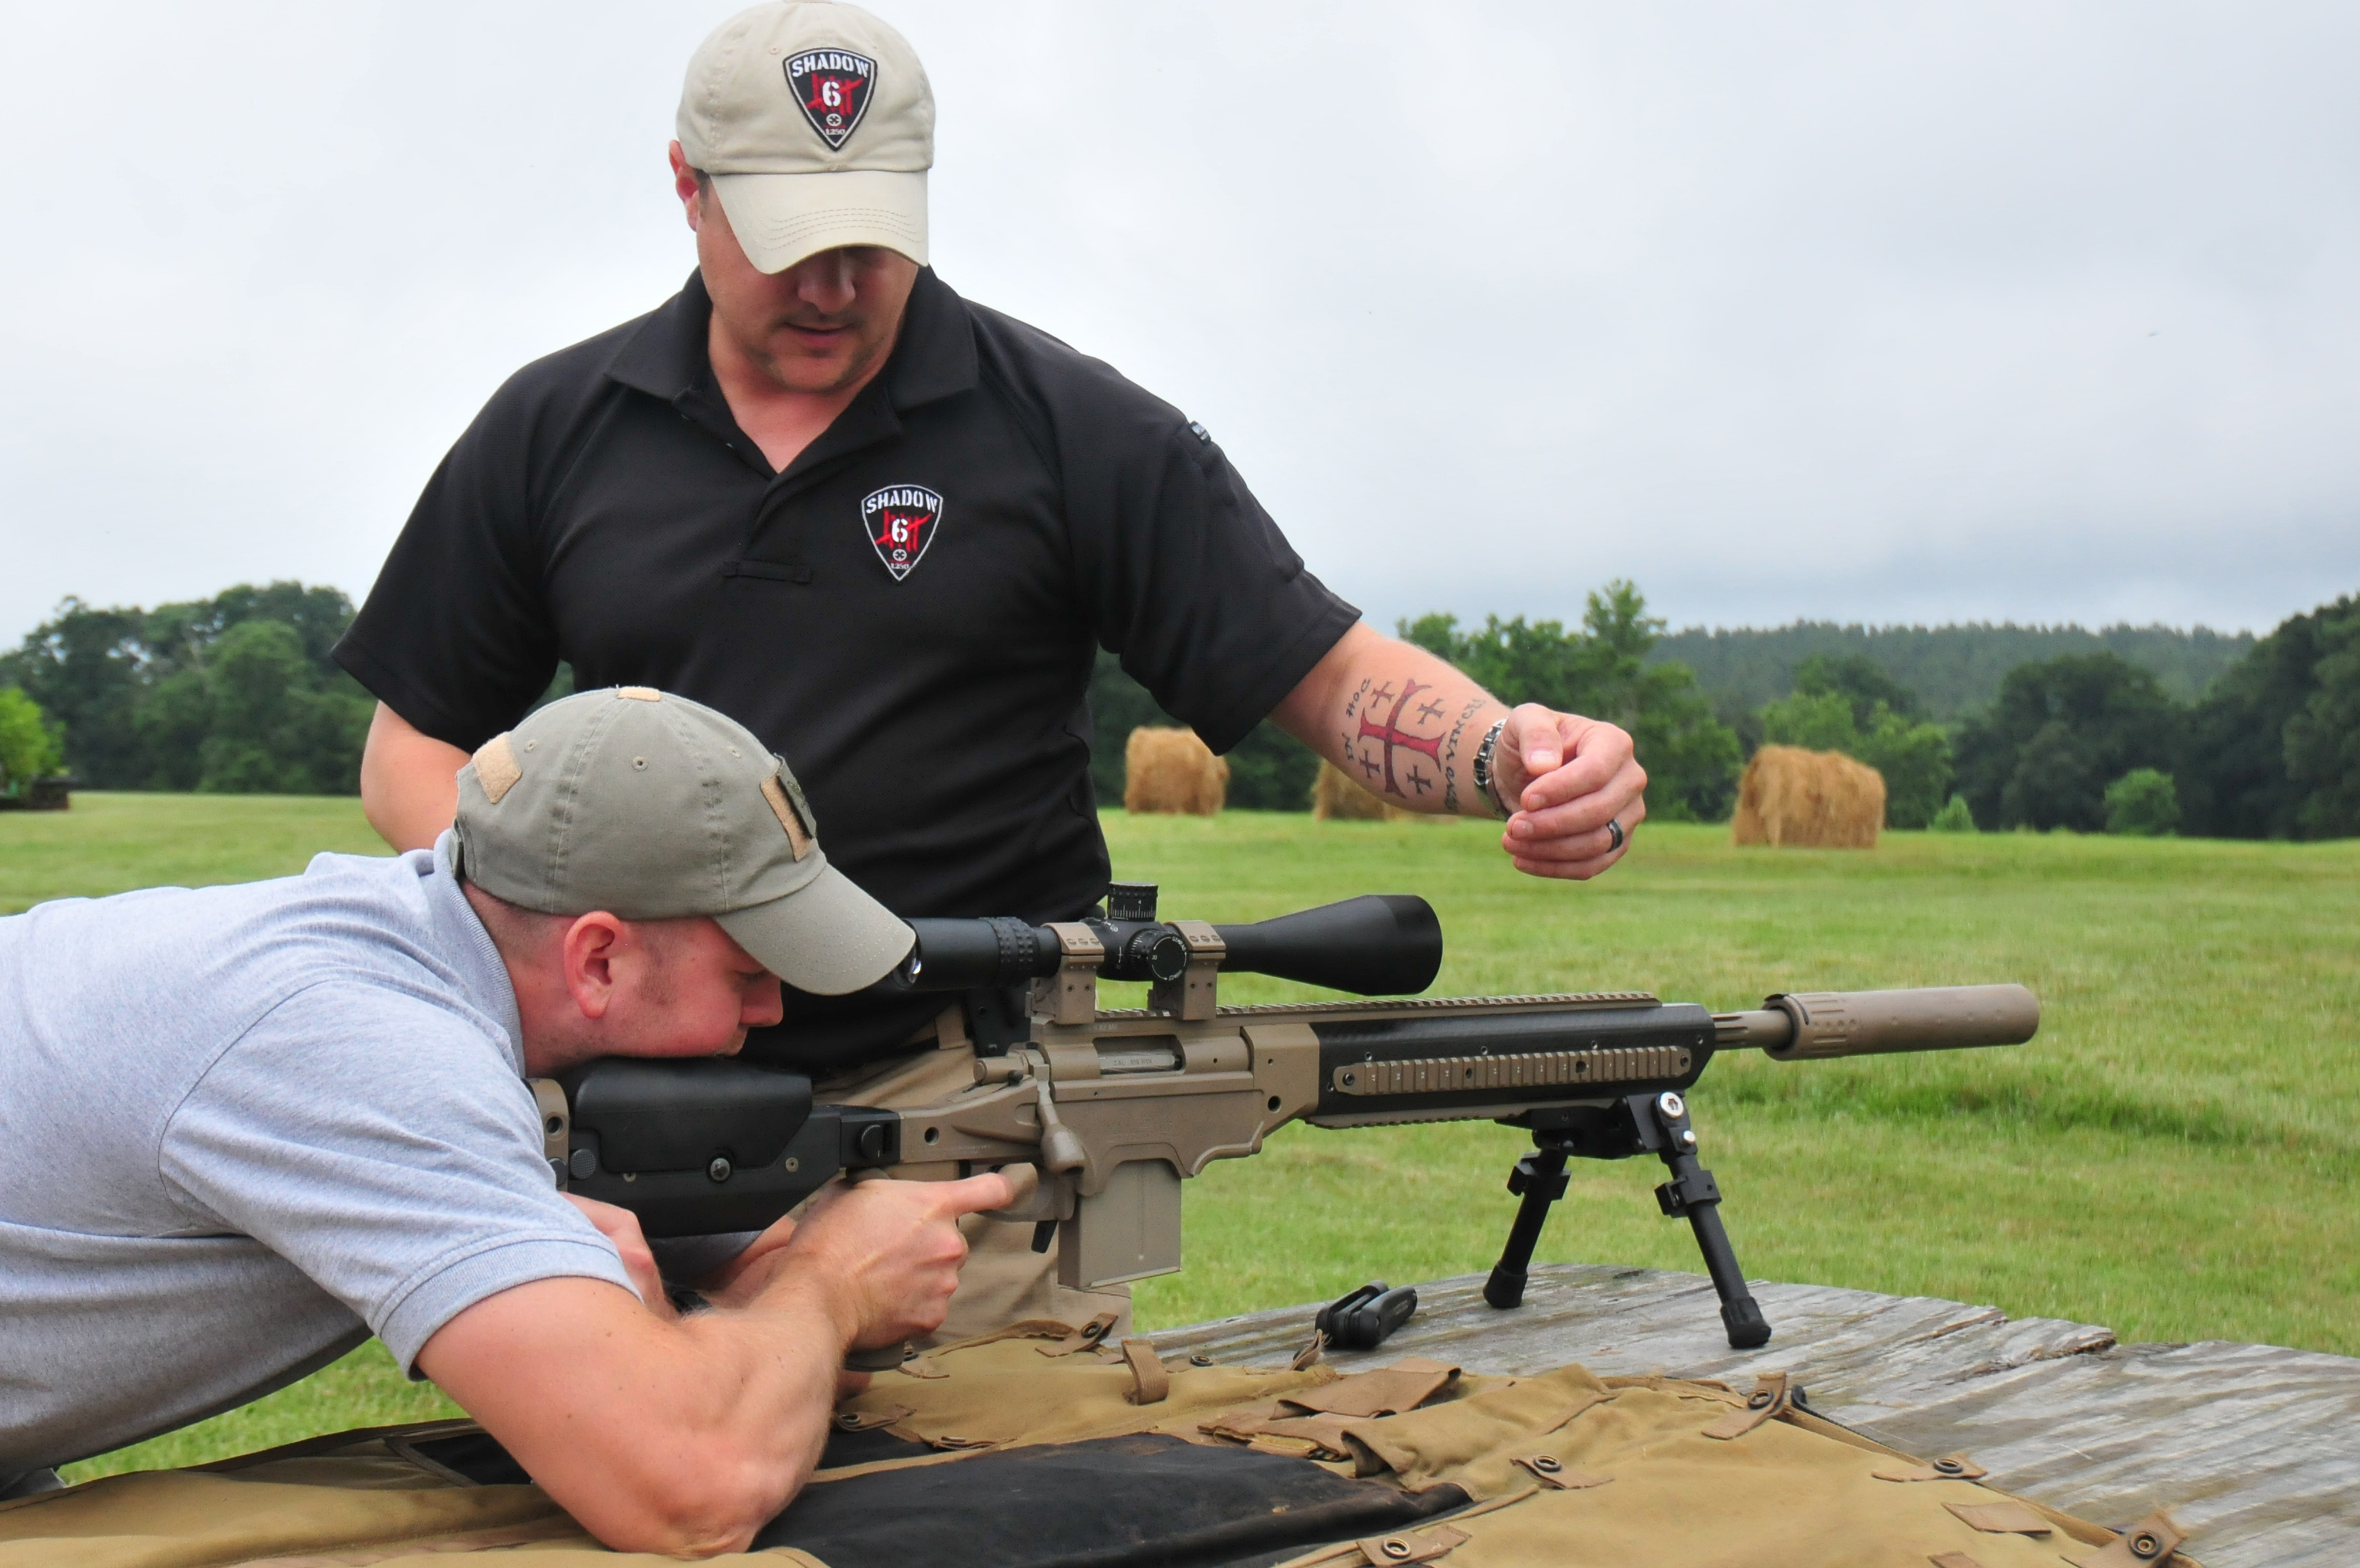 Precision Rifle Training On Scopes